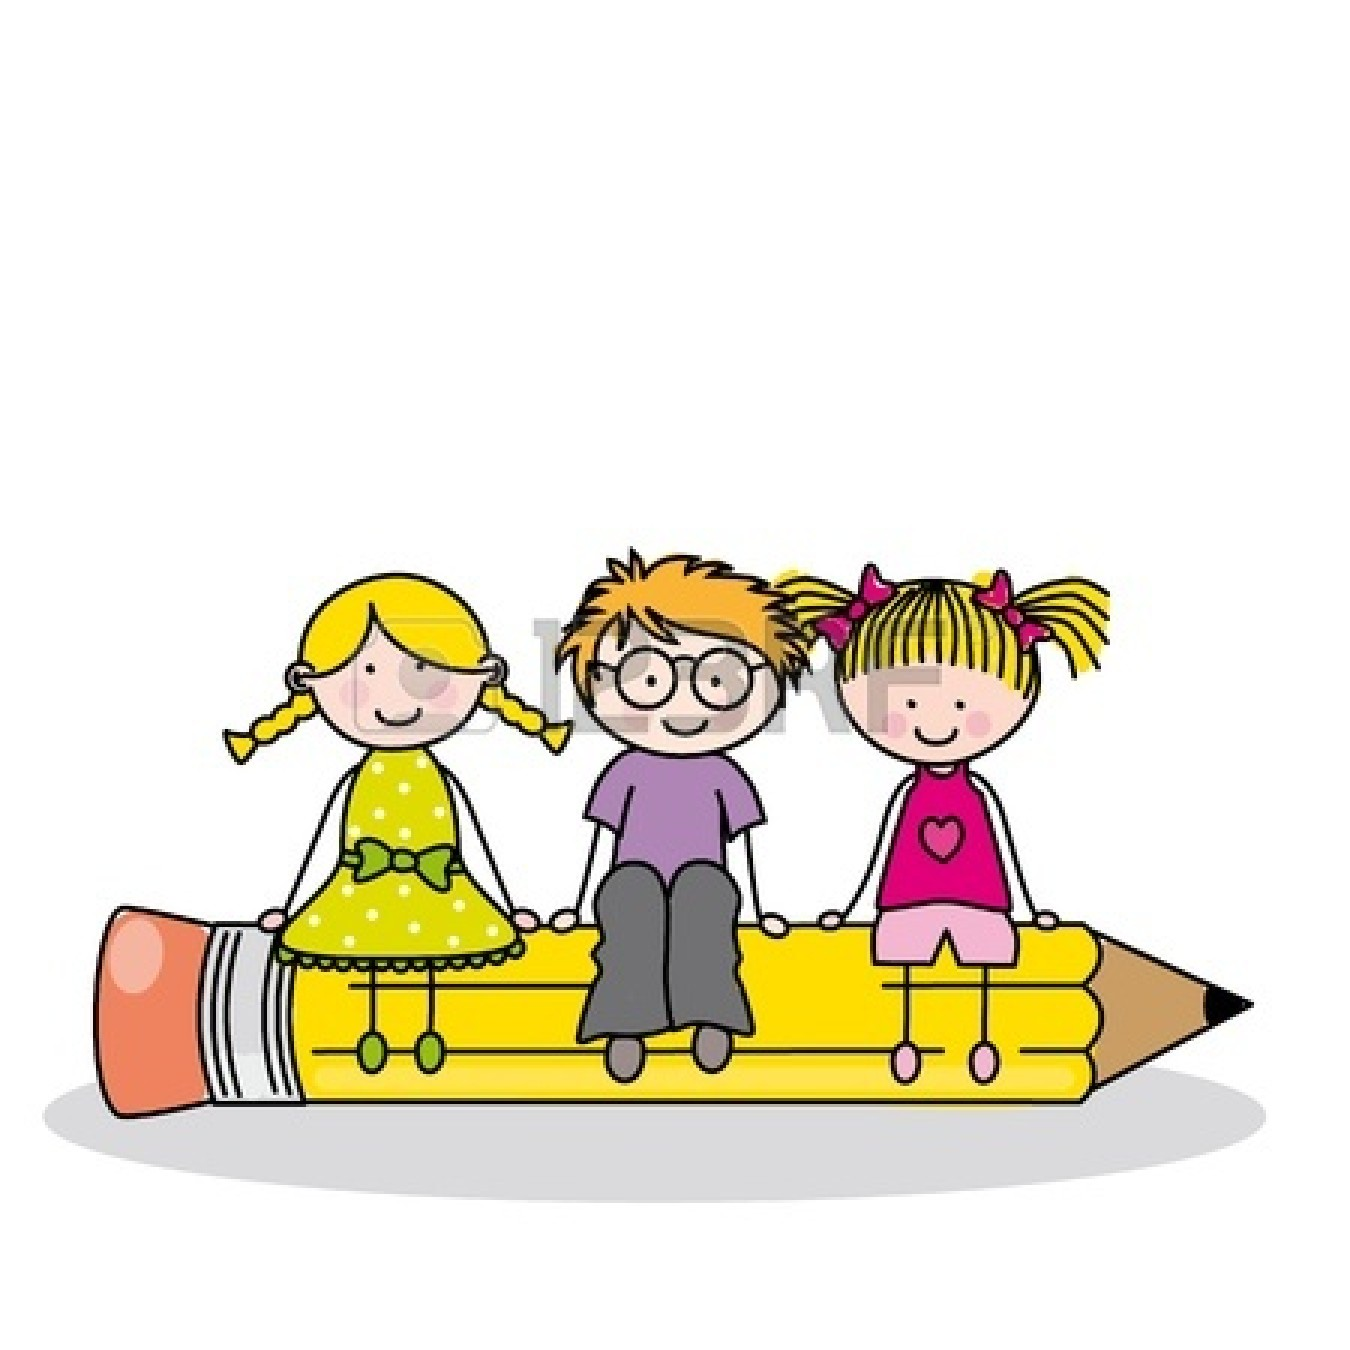 Free Narrative Cliparts, Download Free Clip Art, Free Clip Art on Clipart  Library